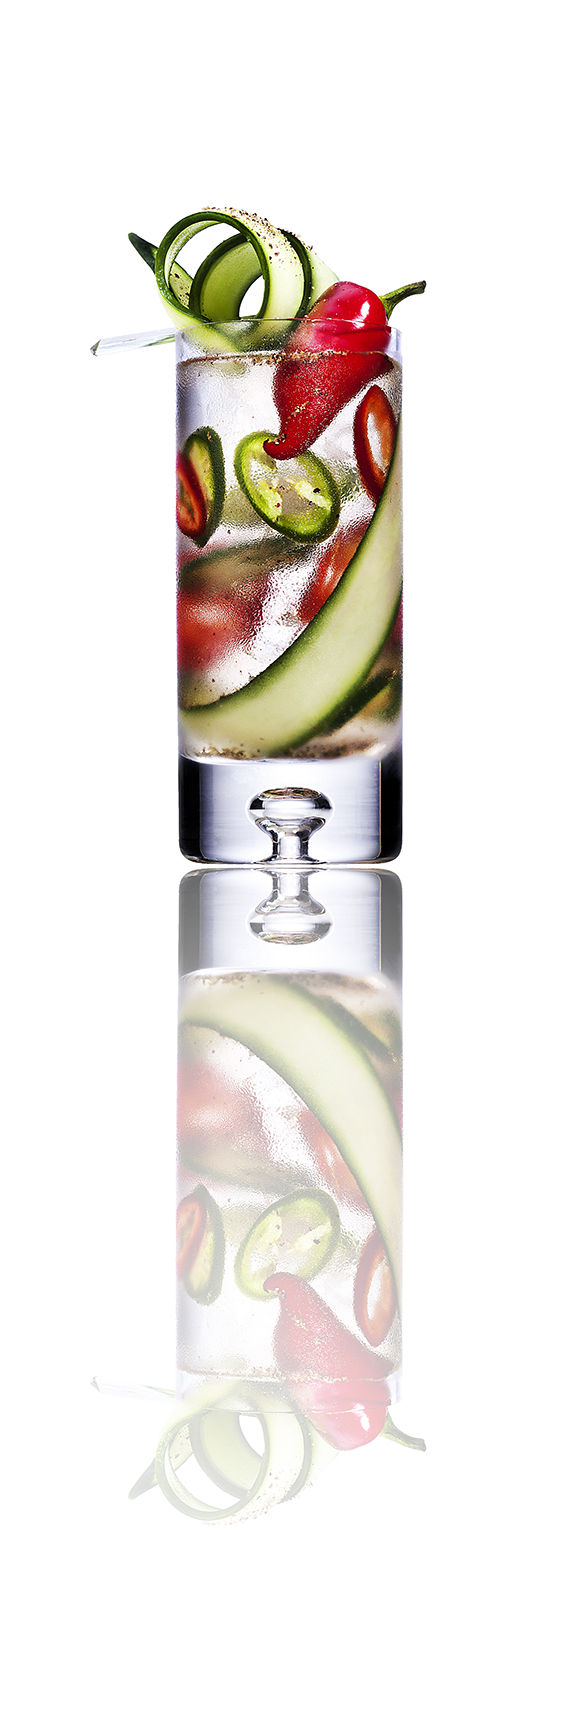 Cucumber Pepper Tequila Cocktail